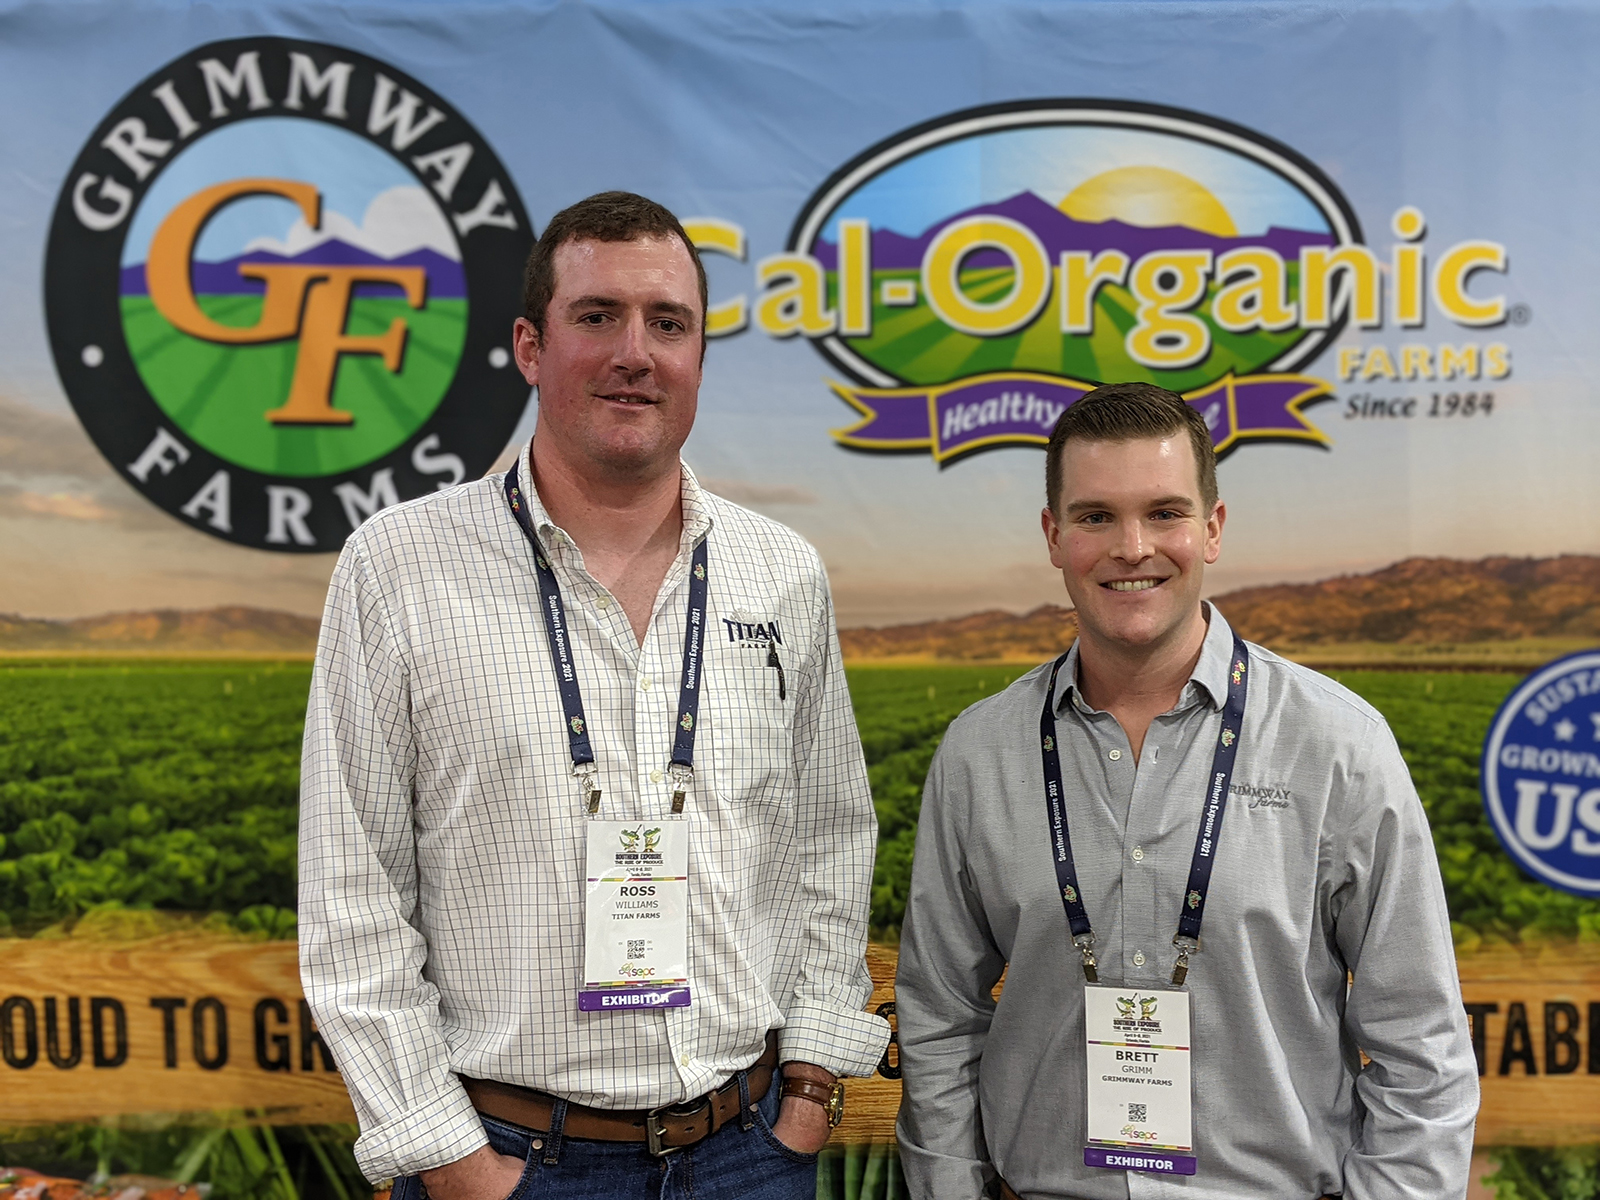 Ross Williams of Titan Farms with Brett Grimm of Grimmway Farms.